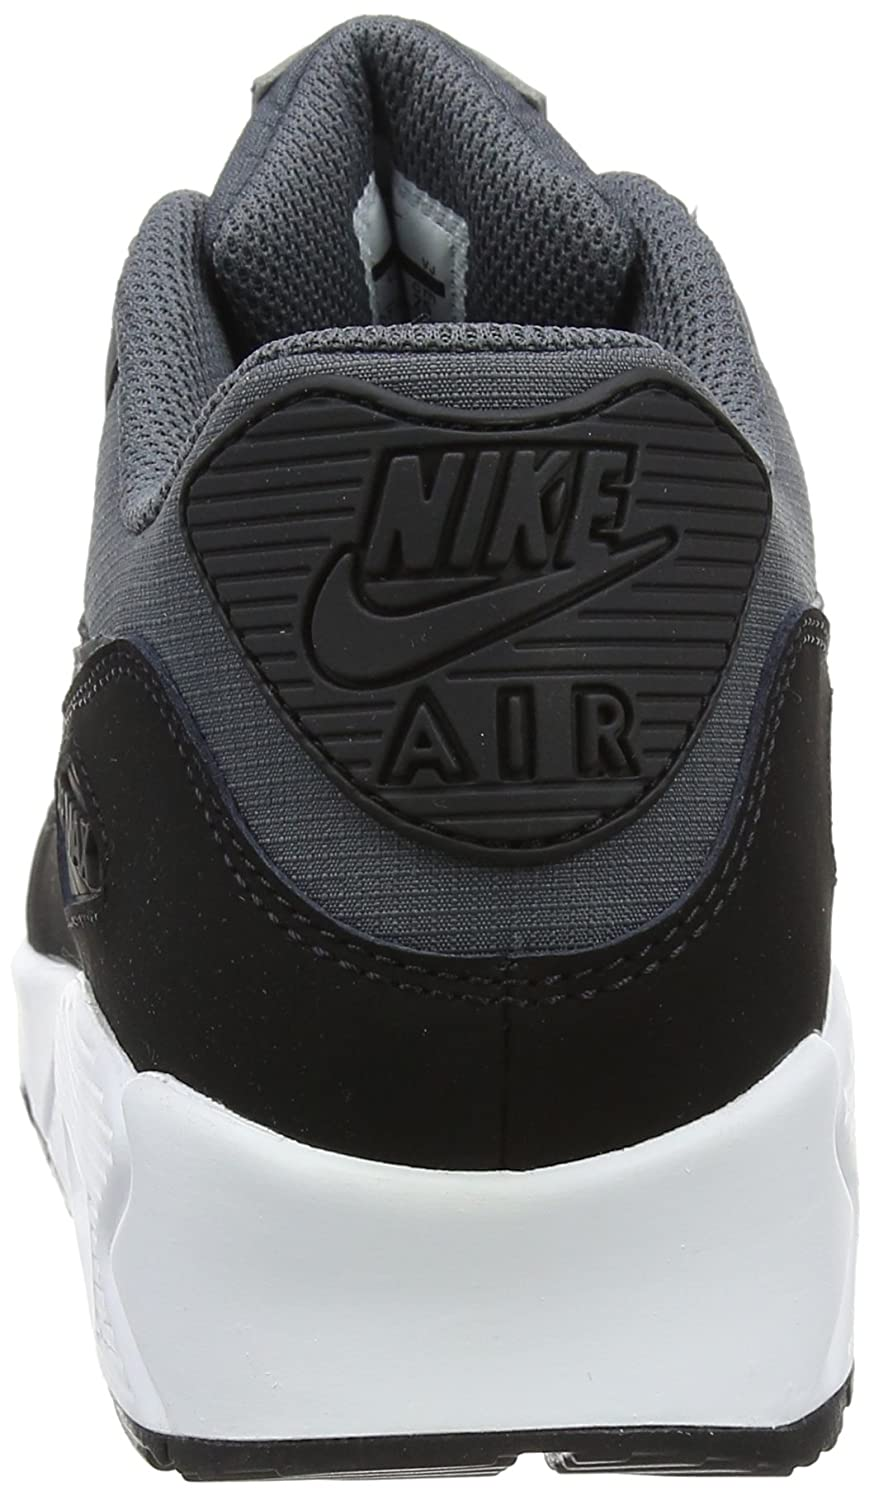 new arrival 5b199 76b5f ... Nike Air Max 90 Chaussures Hommes Gris Salle Blanche n2zTh ...